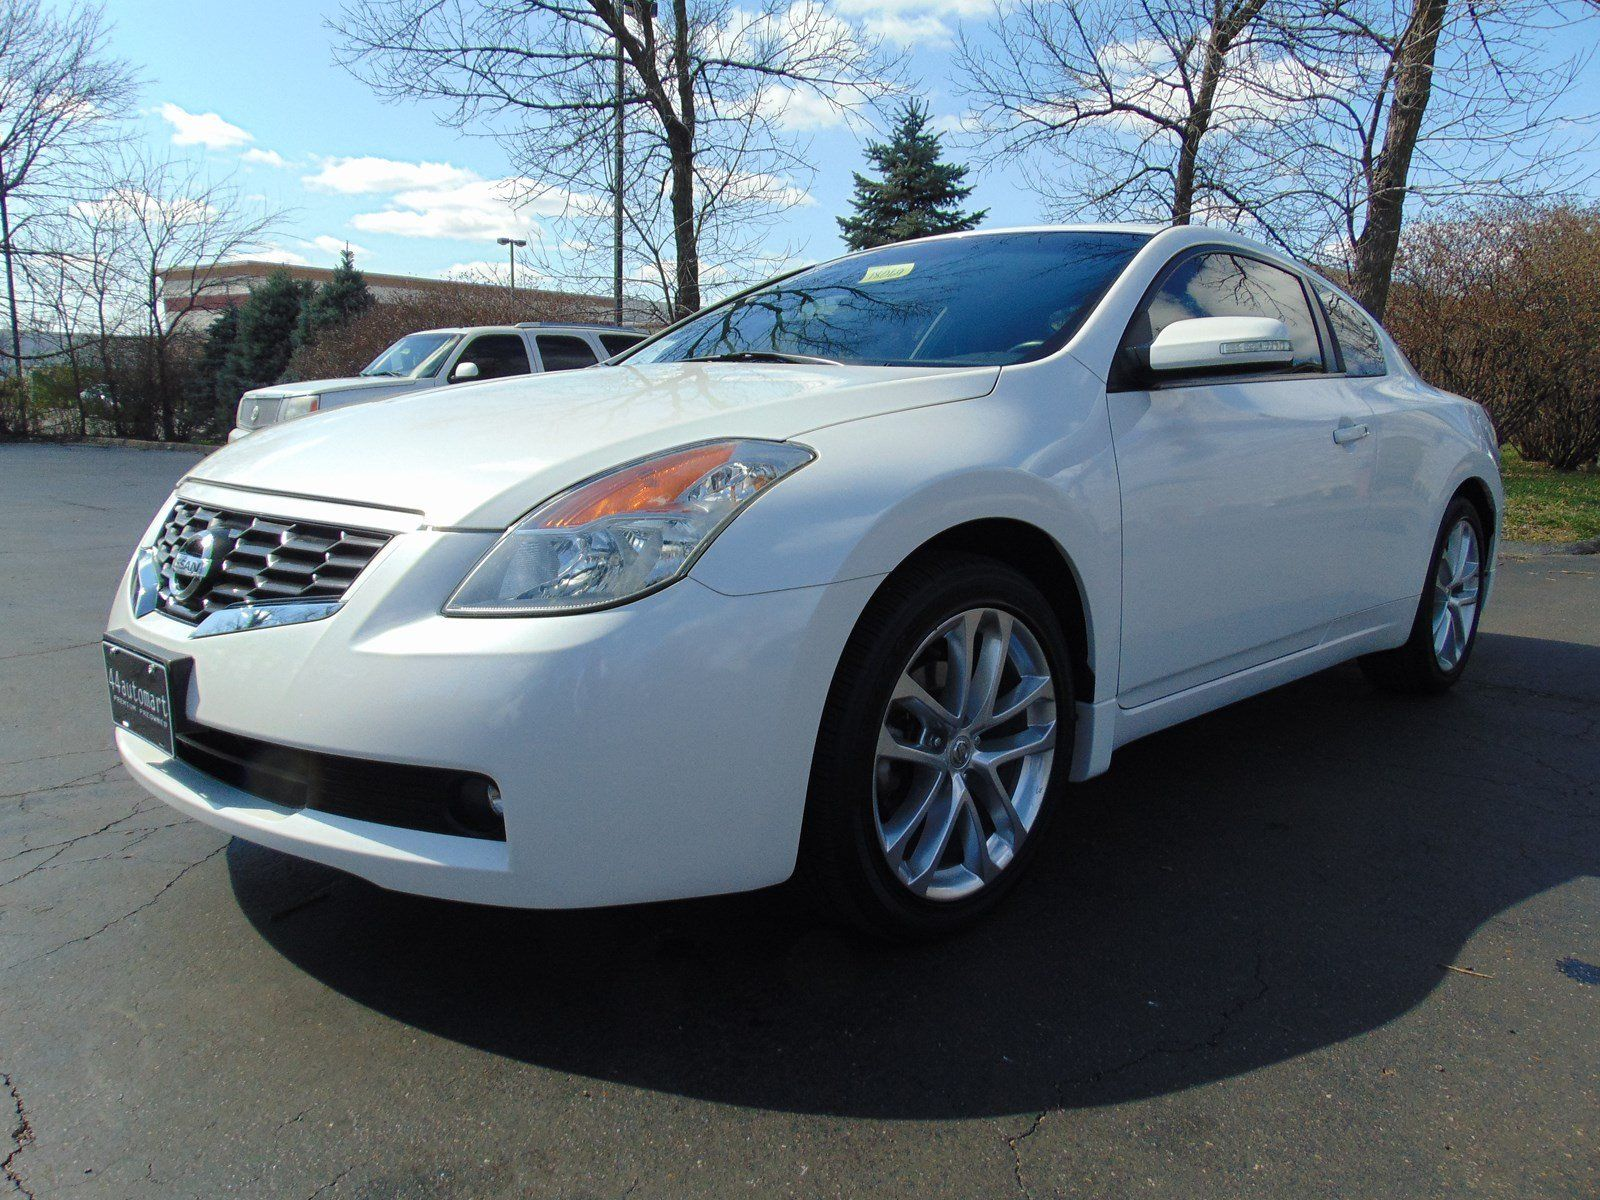 cars for sale used 2009 nissan altima 3 5 se for sale in louisville ky 40220 coupe details. Black Bedroom Furniture Sets. Home Design Ideas